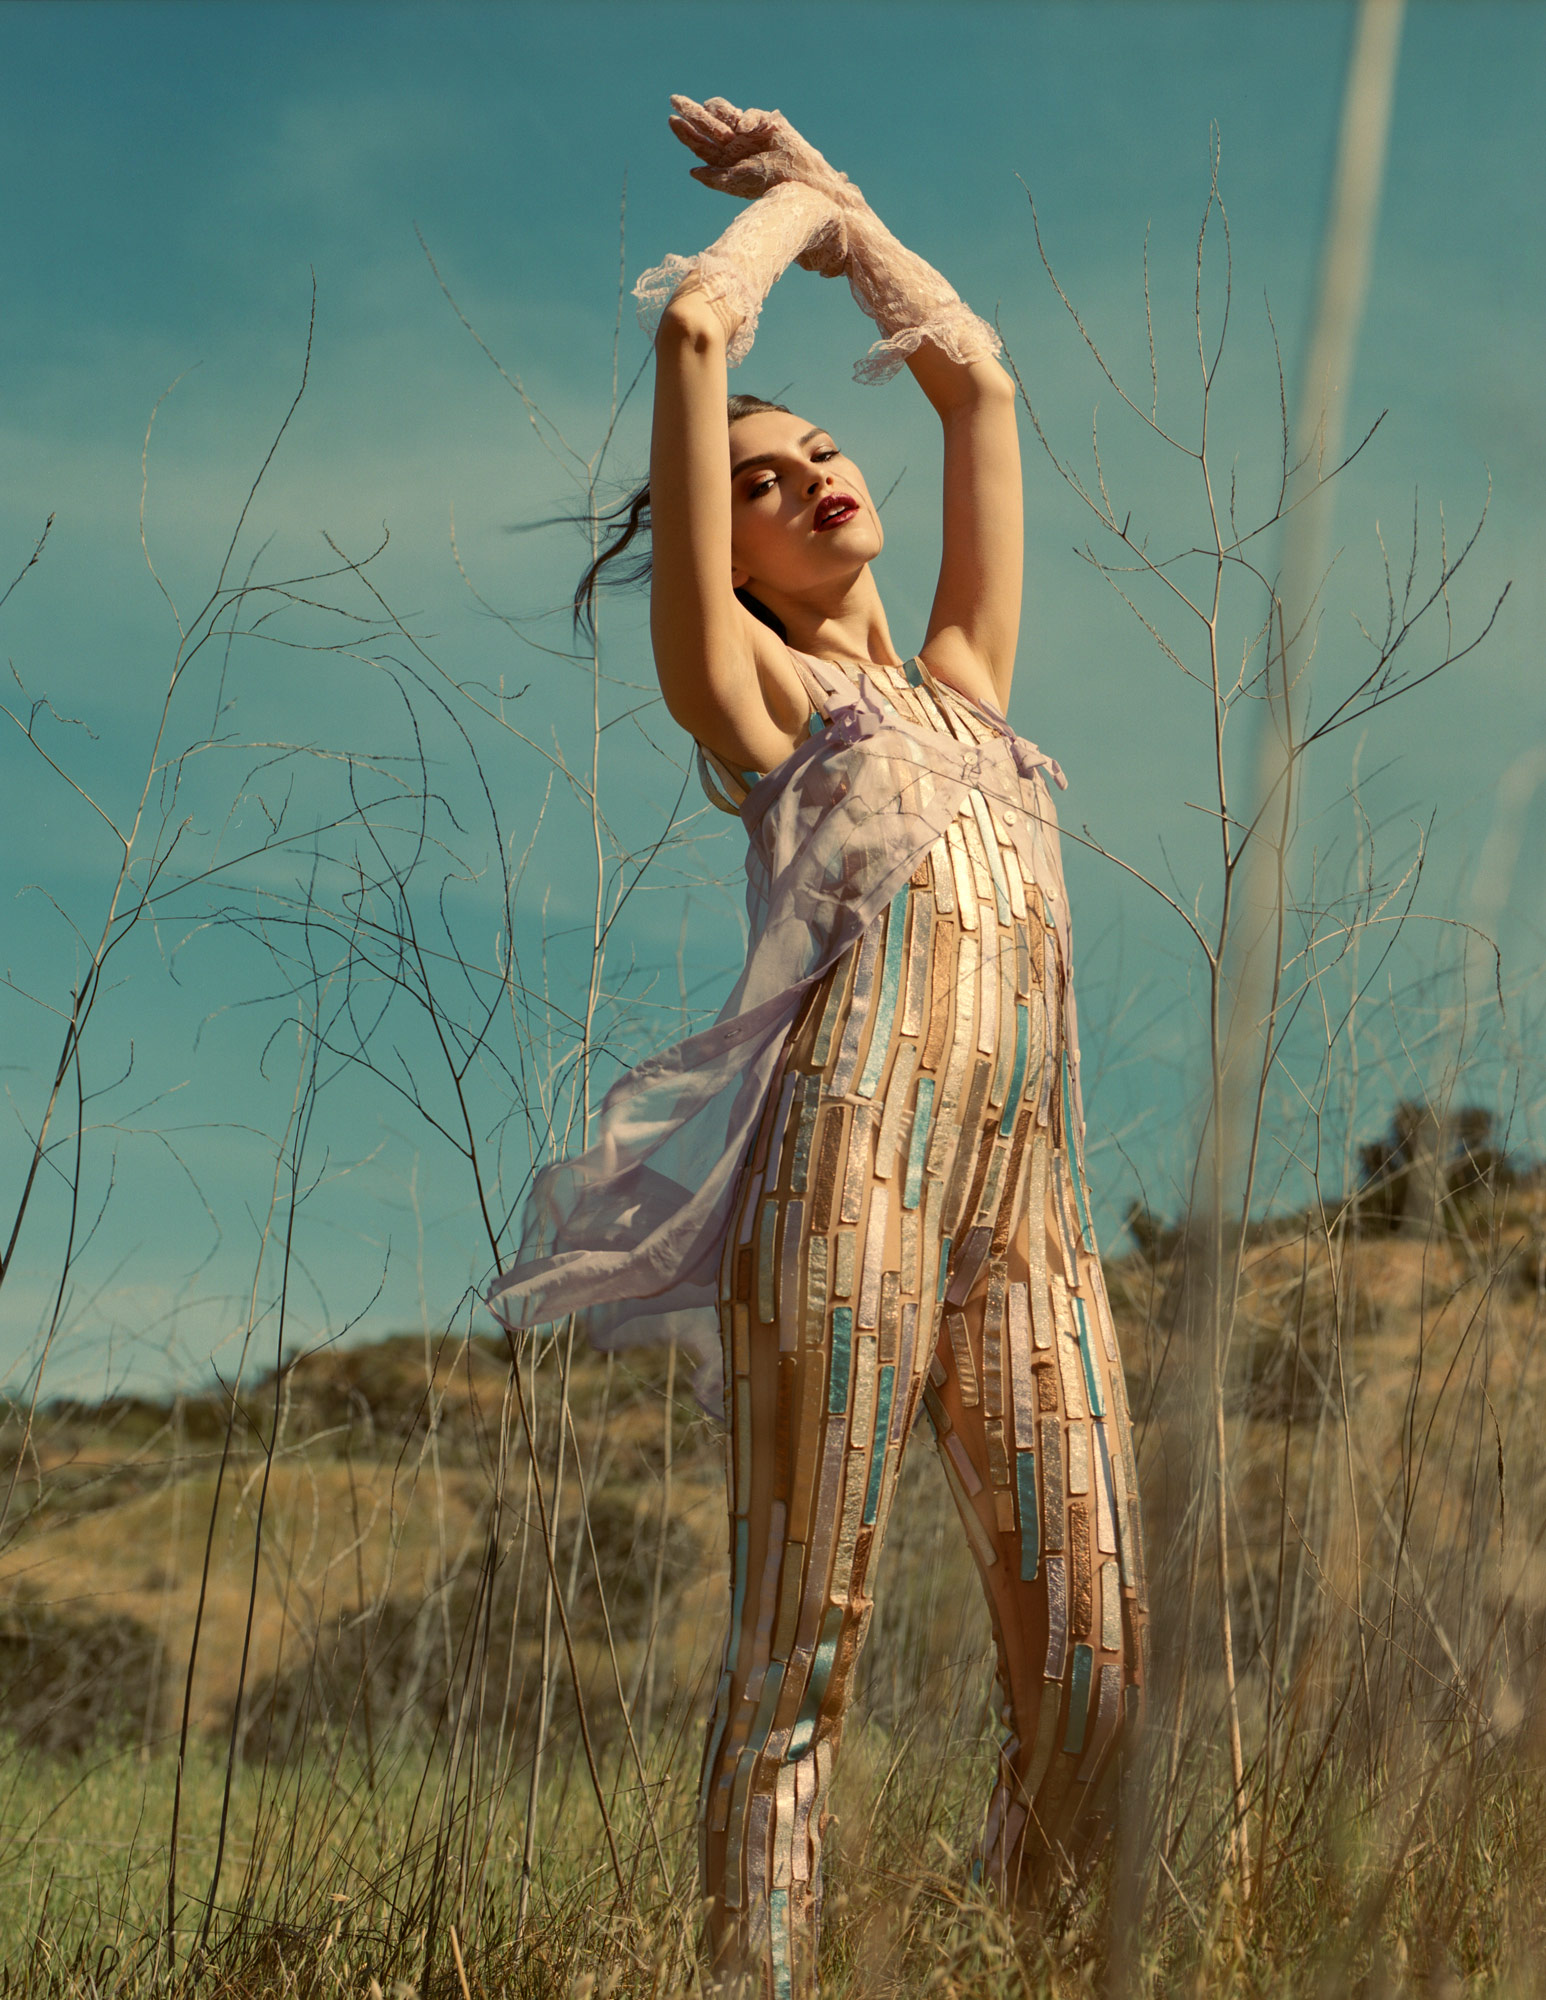 Into The Wild, Cristal Chavez in  fashion editorial for Promo Magazine by Ioannis Koussertari